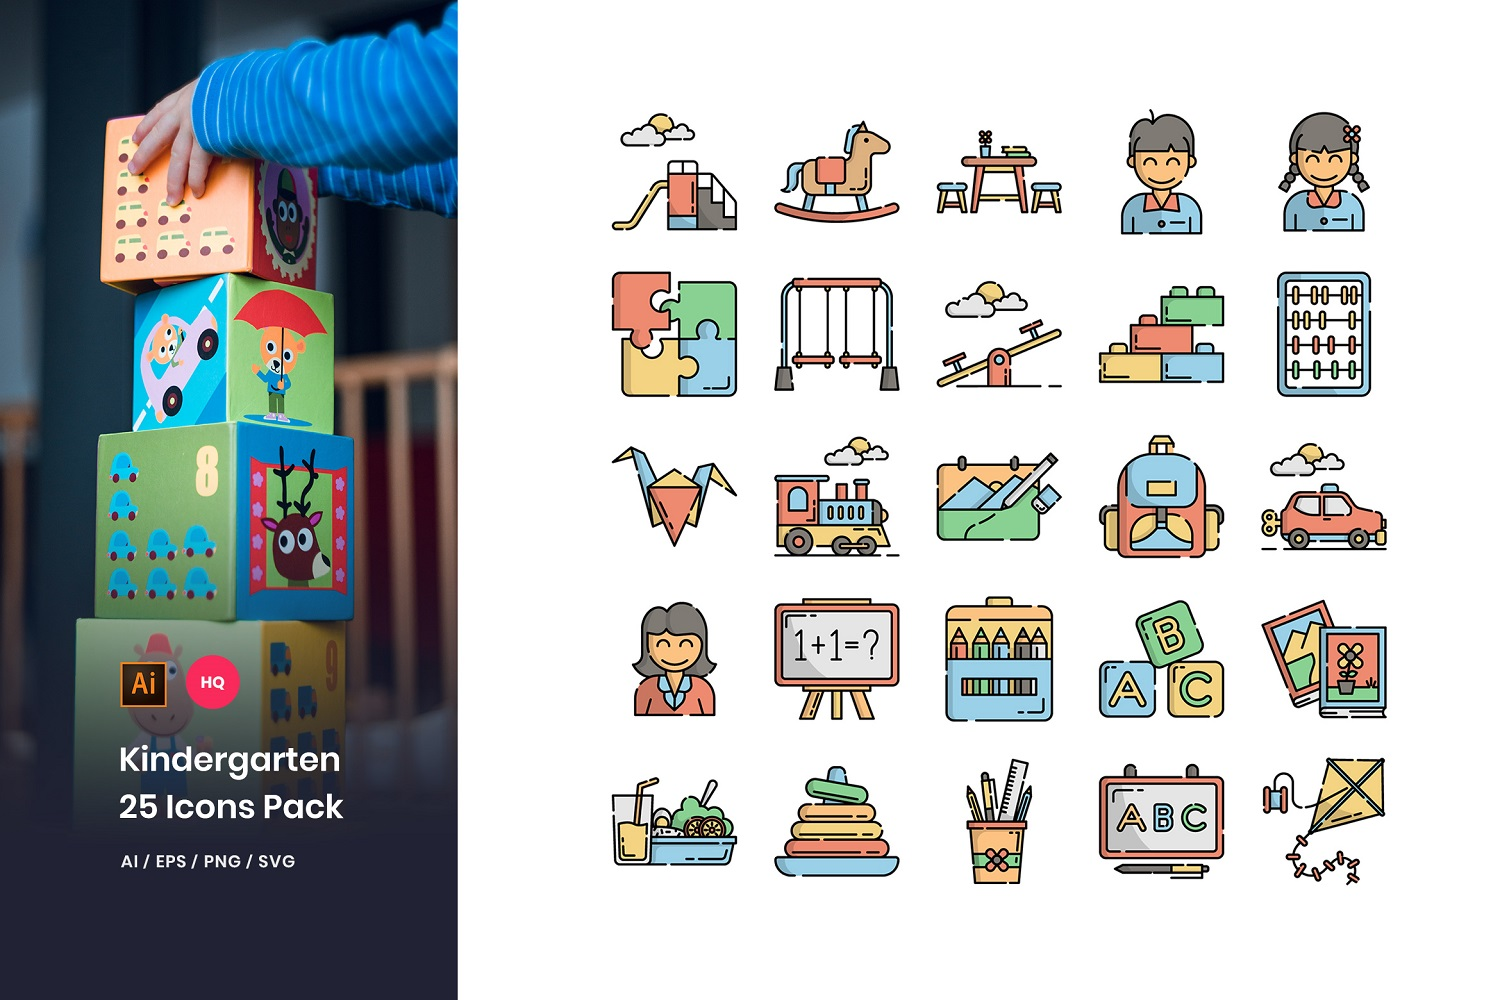 Kindergarten Pack Iconset Template